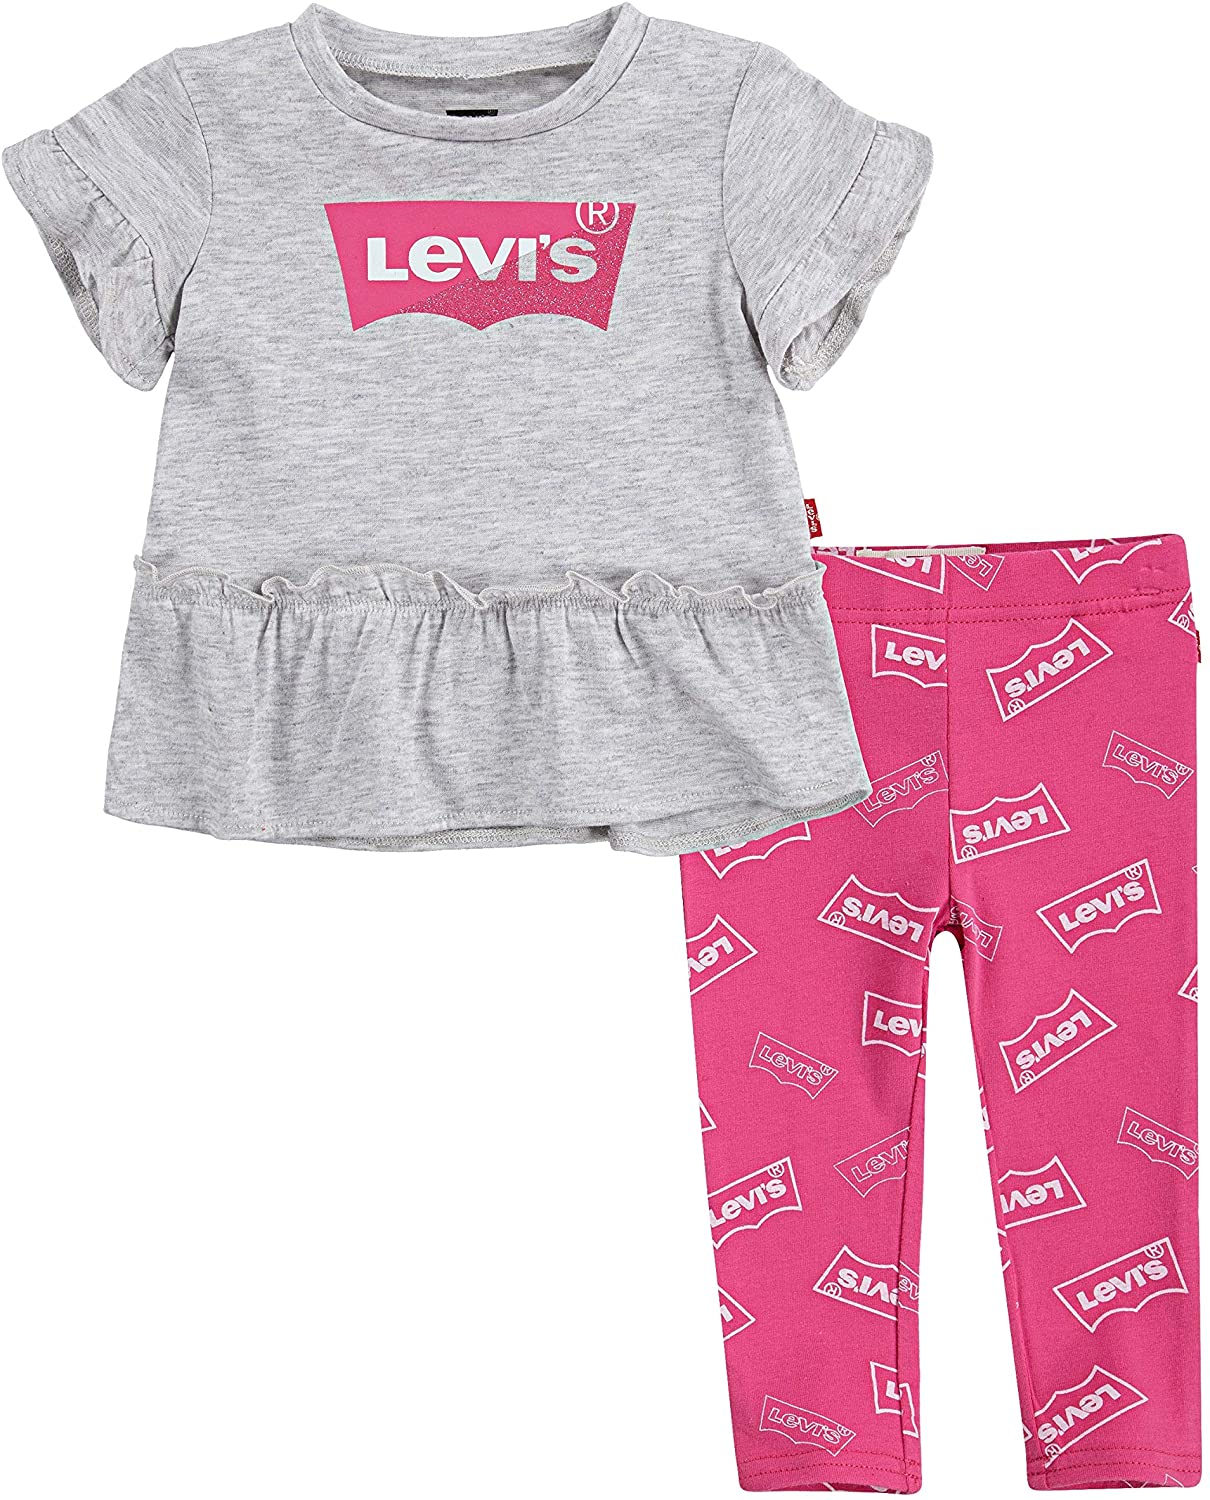 Levi's Baby Girls' Tunic Top and Leggings 2-Piece Outfit Set